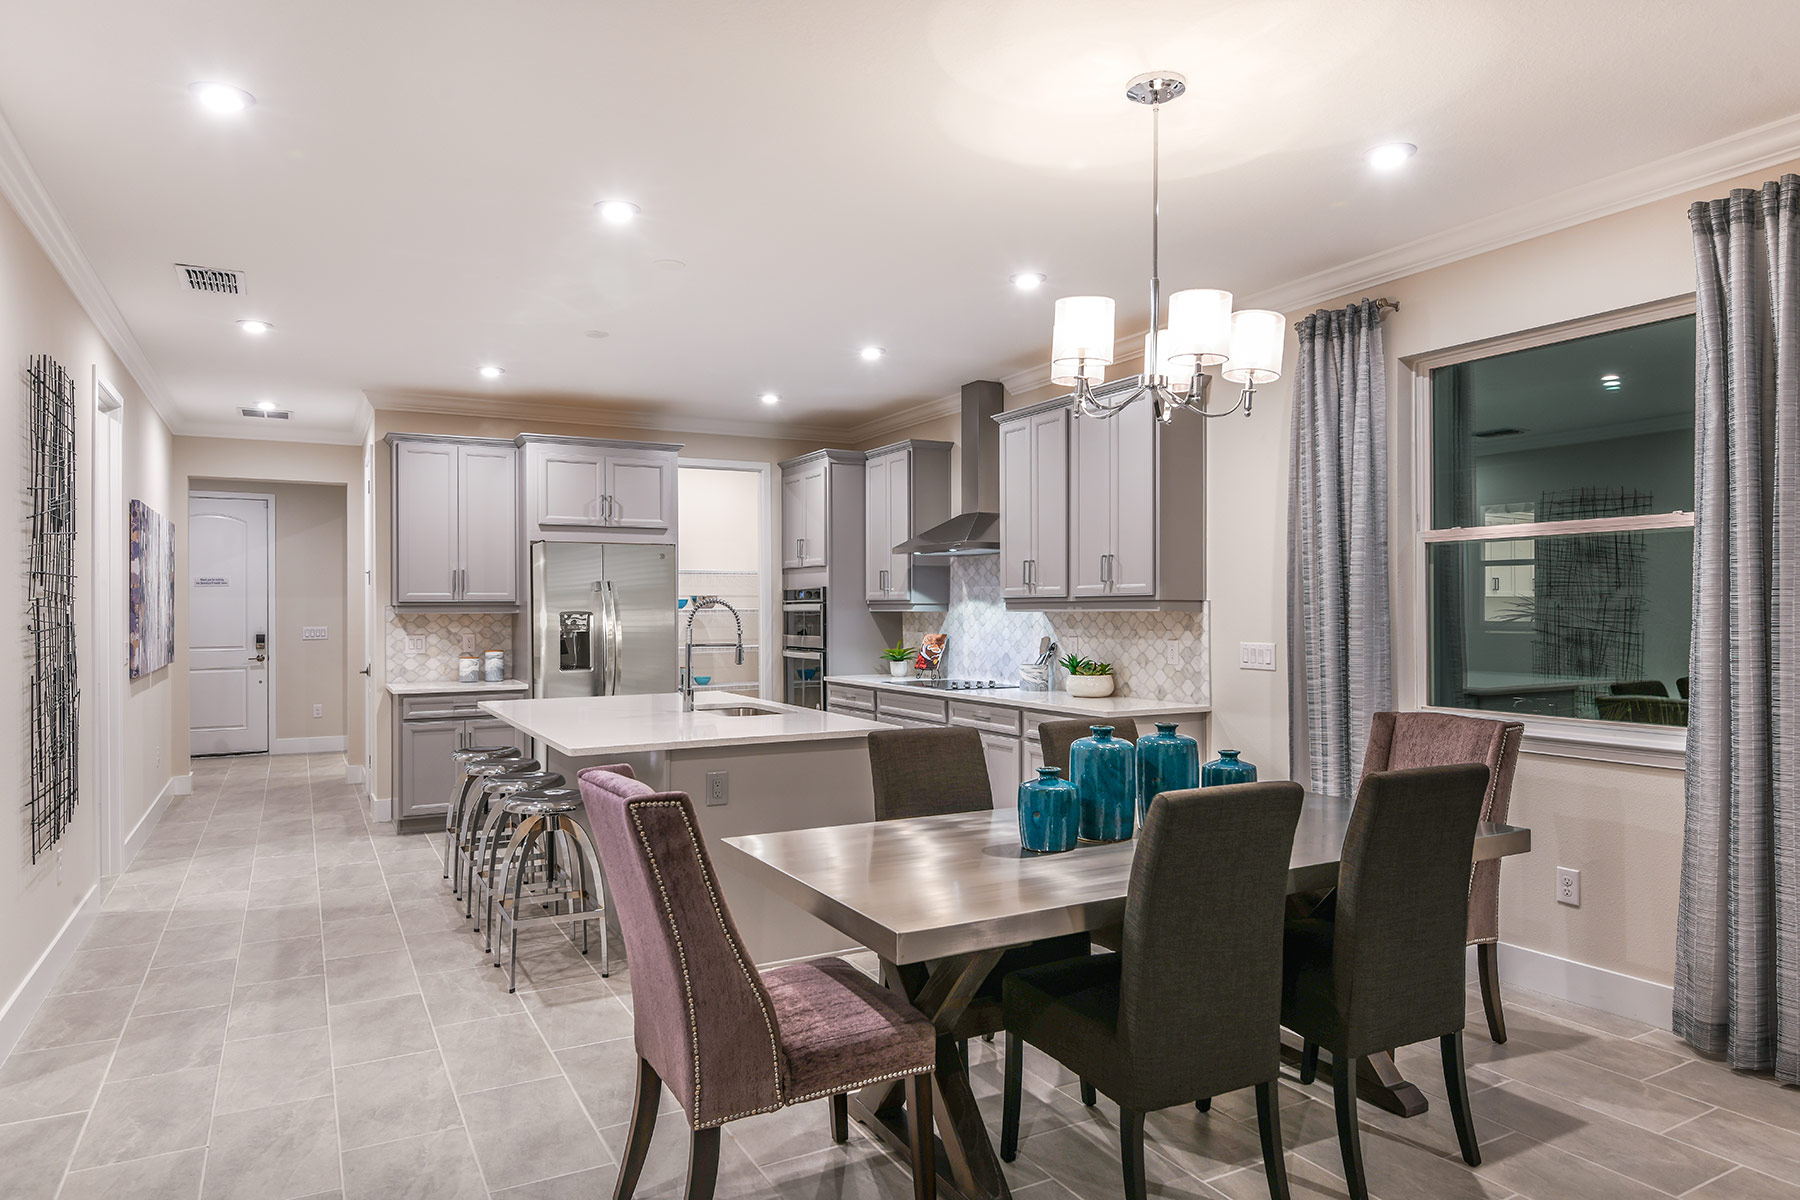 Dominica II Plan Dining at Wellen Park - Renaissance in Venice Florida by Mattamy Homes